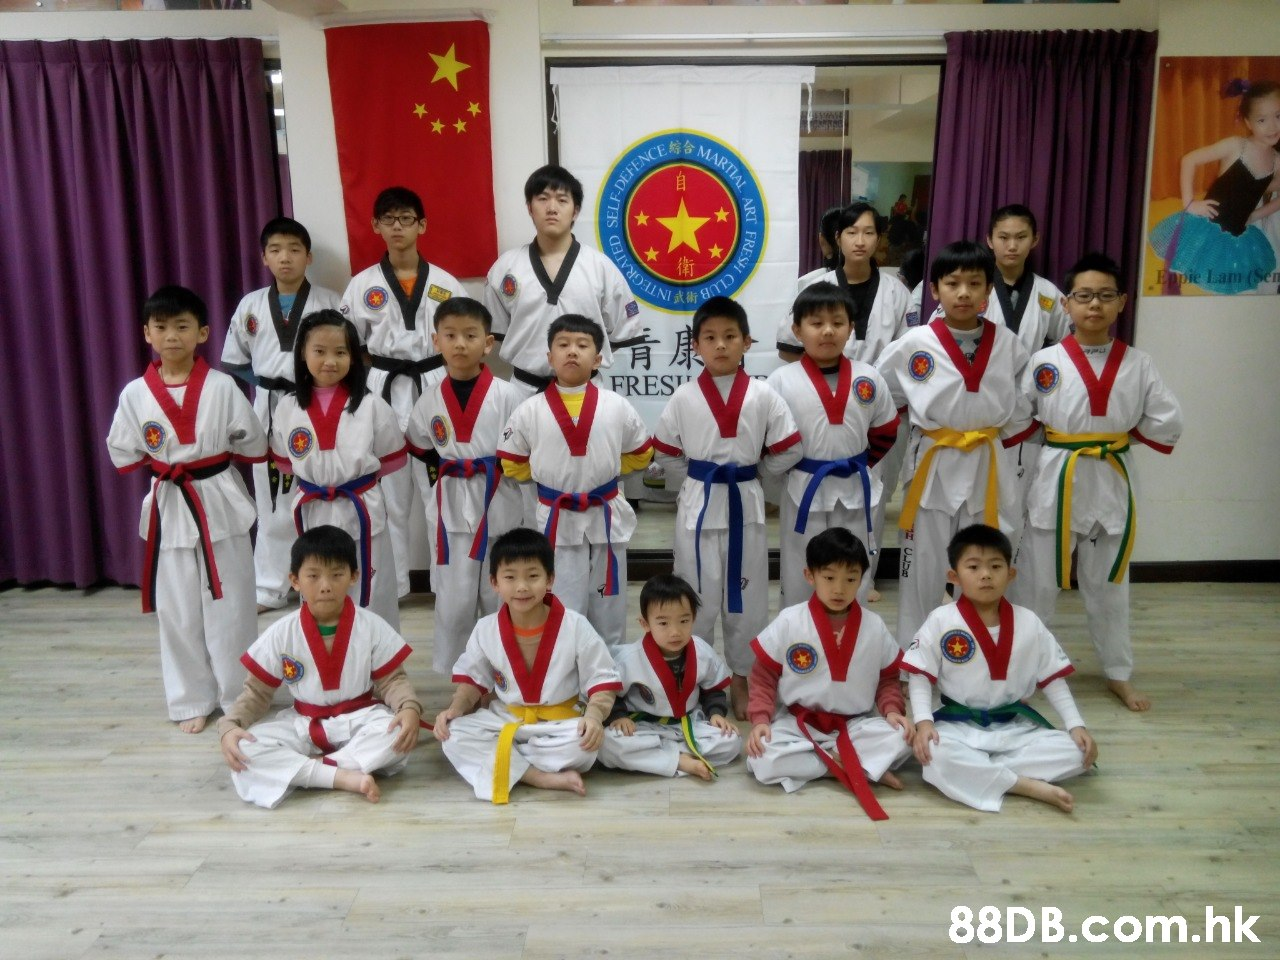 MARTIA CE INTEGRATED Fpie Lam (Sen FRES .hk FRES CL IAL ART SELF-DEF  Martial arts uniform,Choi kwang-do,Shidokan,Taekwondo,Tang soo do